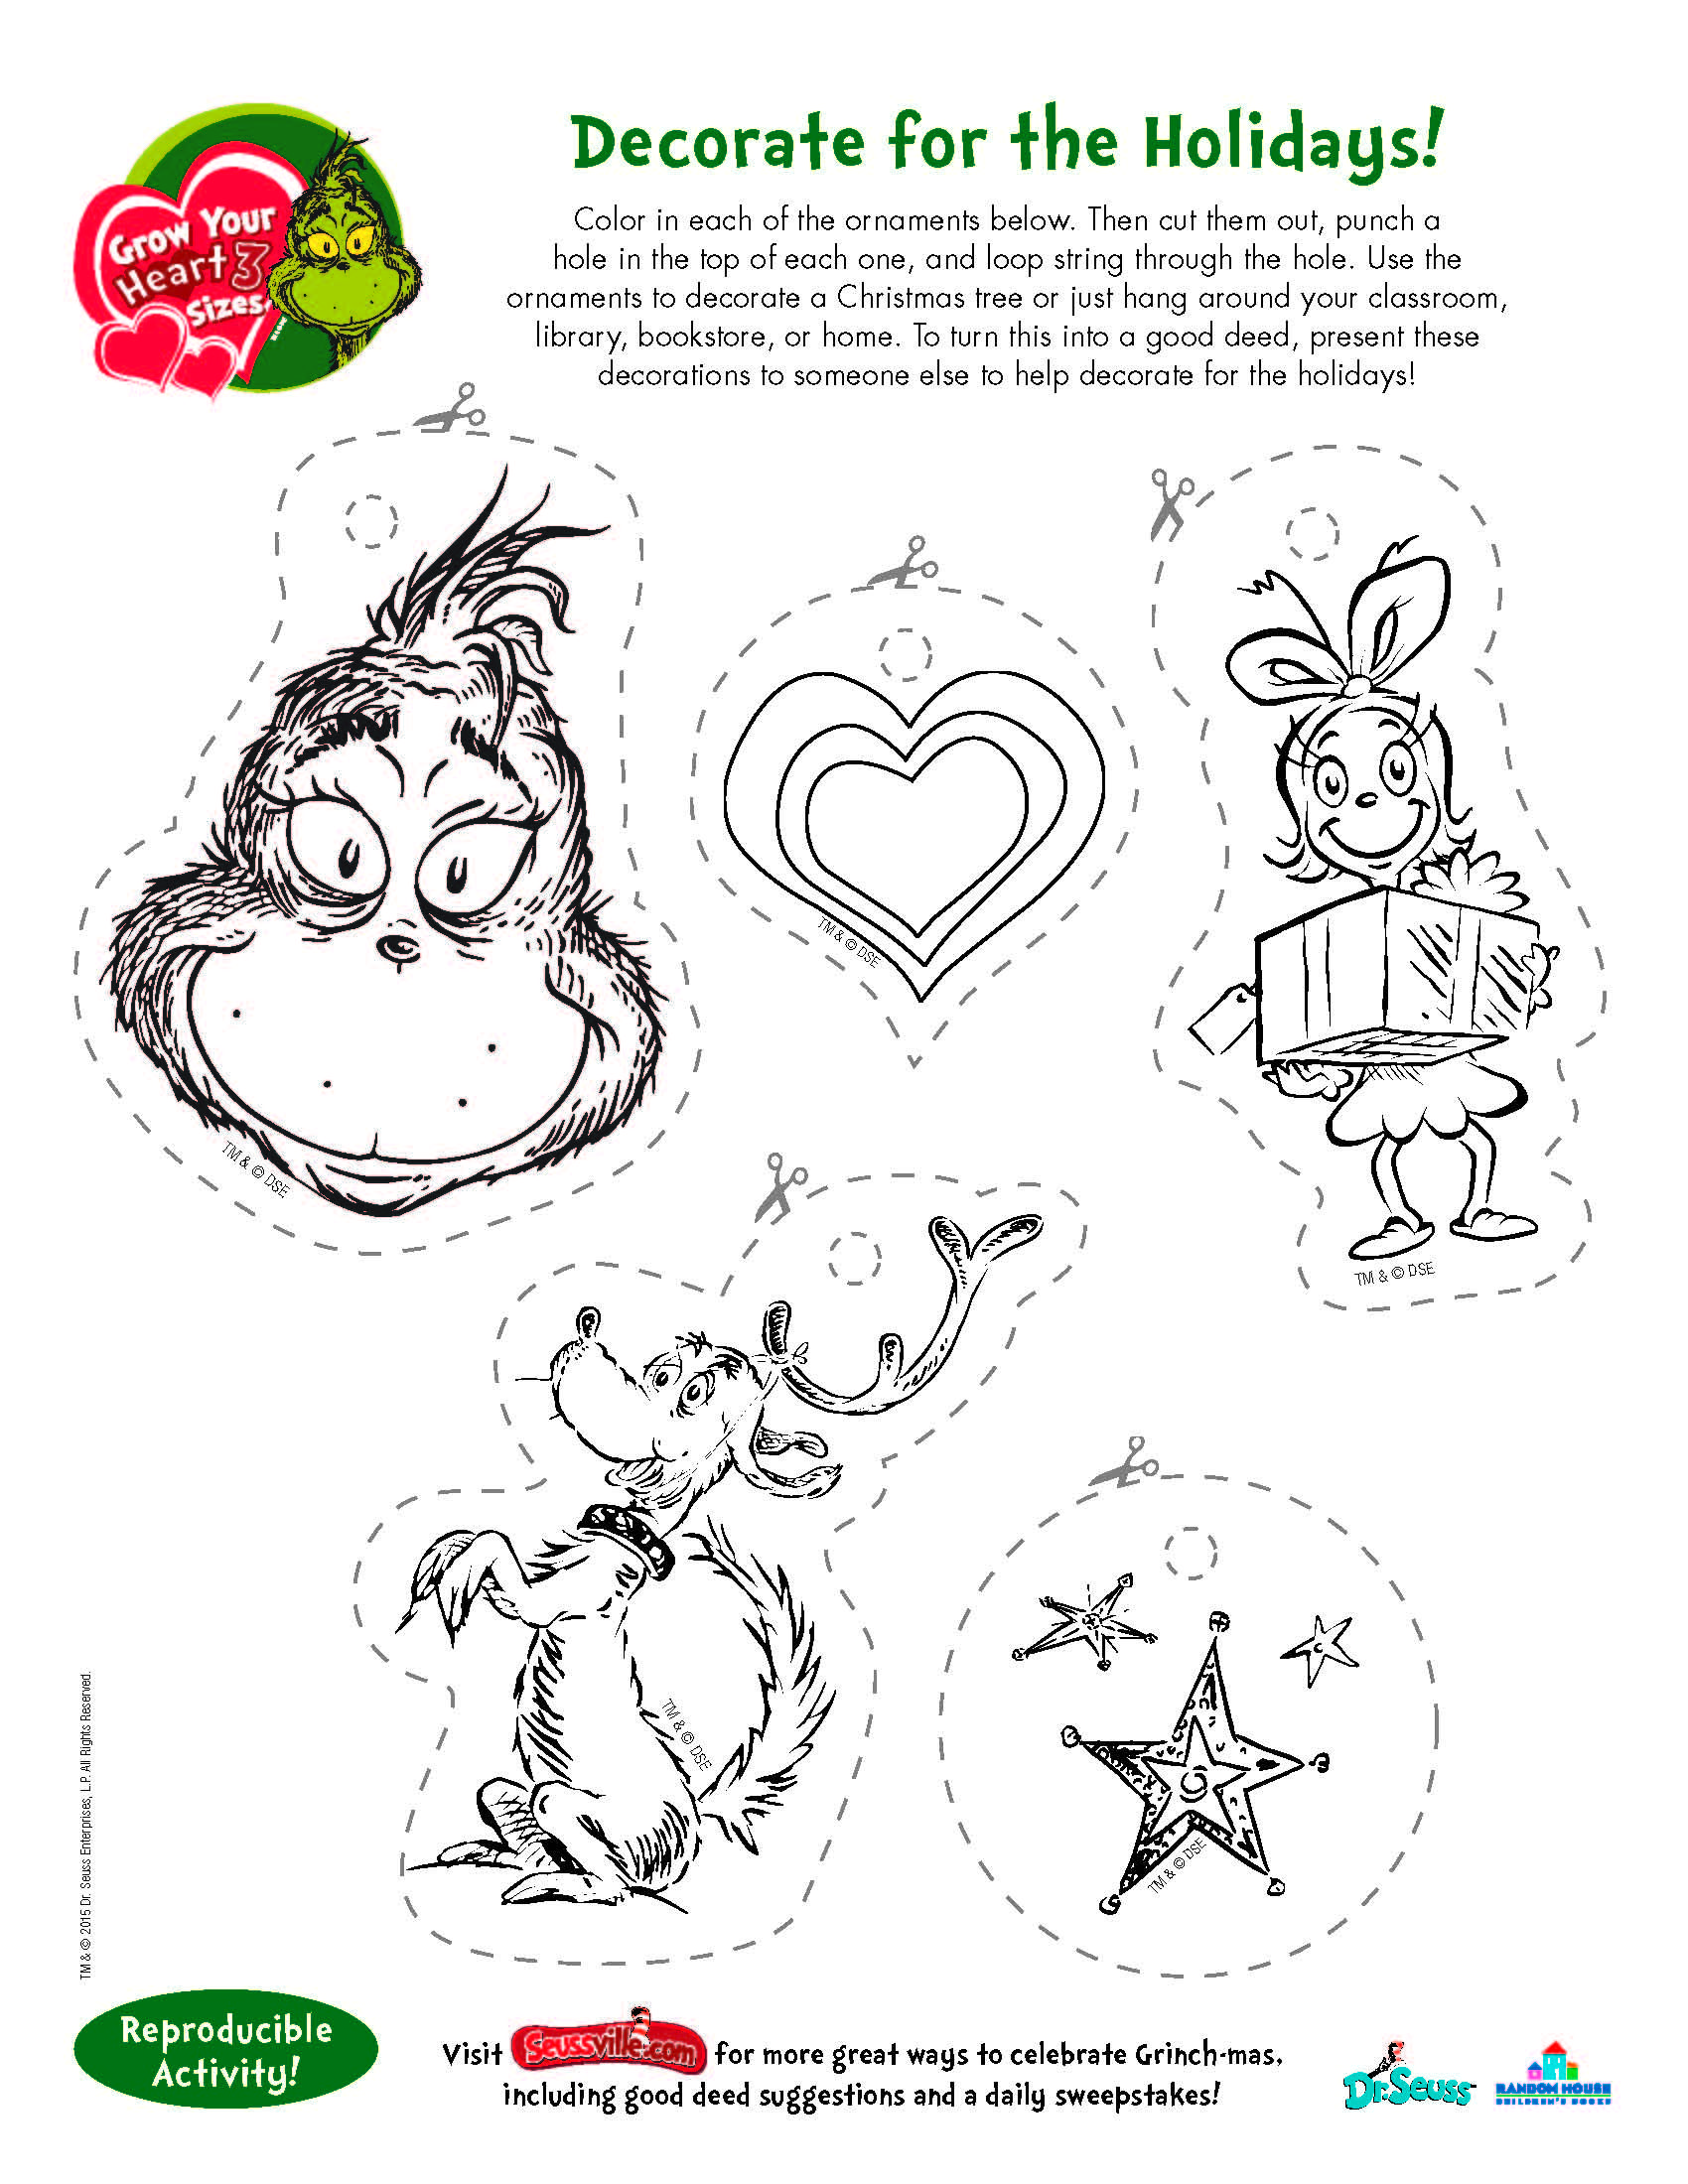 Free printables and wonderful activities from none other